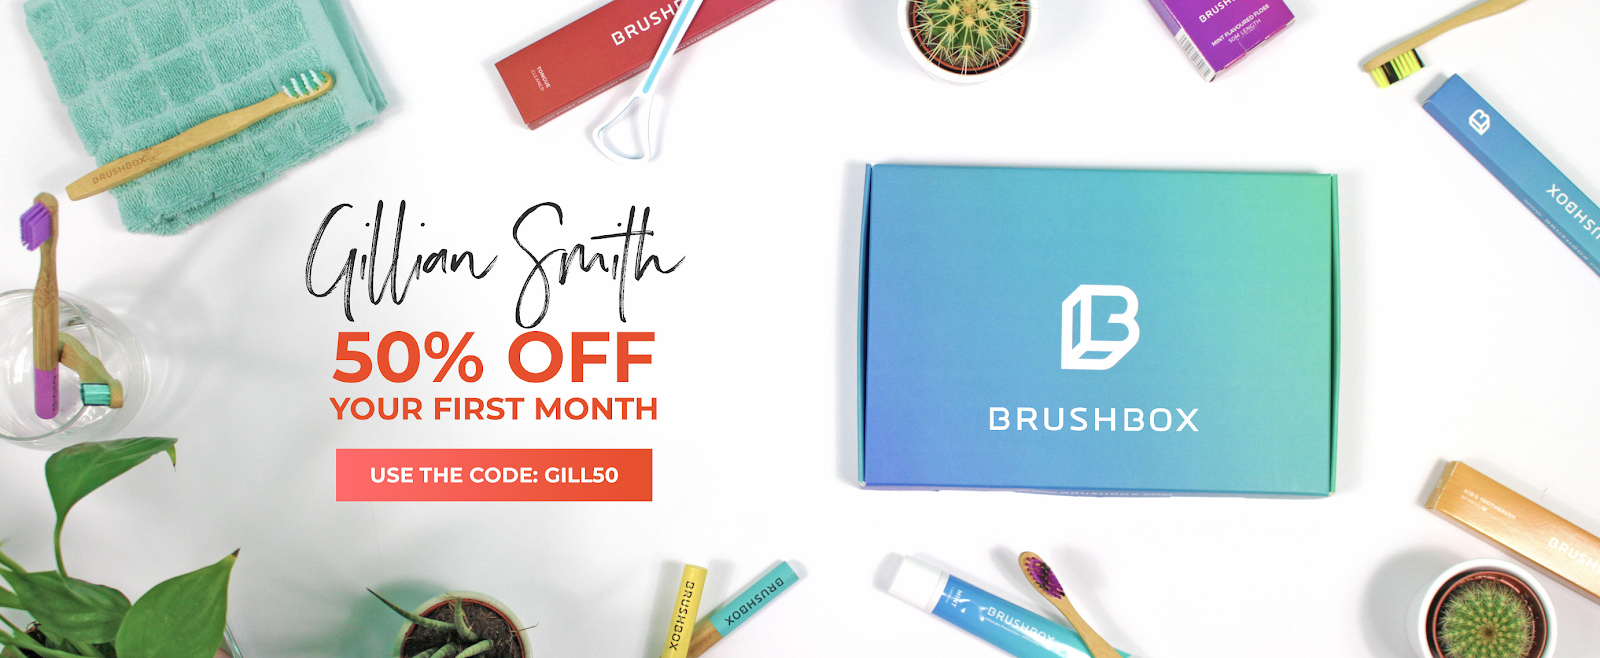 Brushbox | Oral Health Direct To Your Door Discount Code